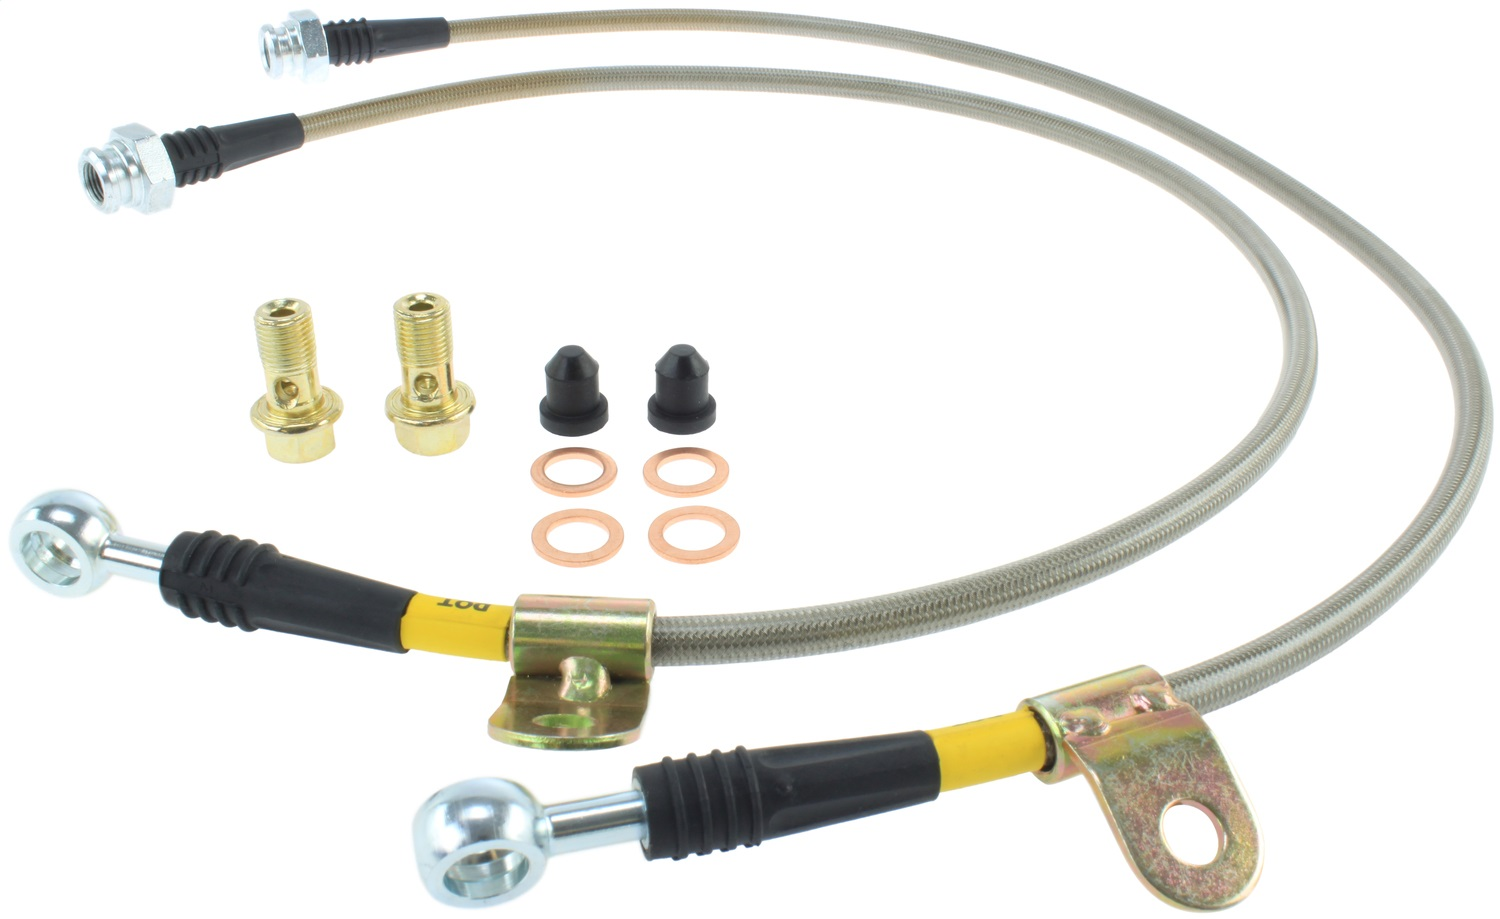 StopTech 950.42004 Stainless Steel Braided Brake Hose Kit Fits 03-08 350Z G35